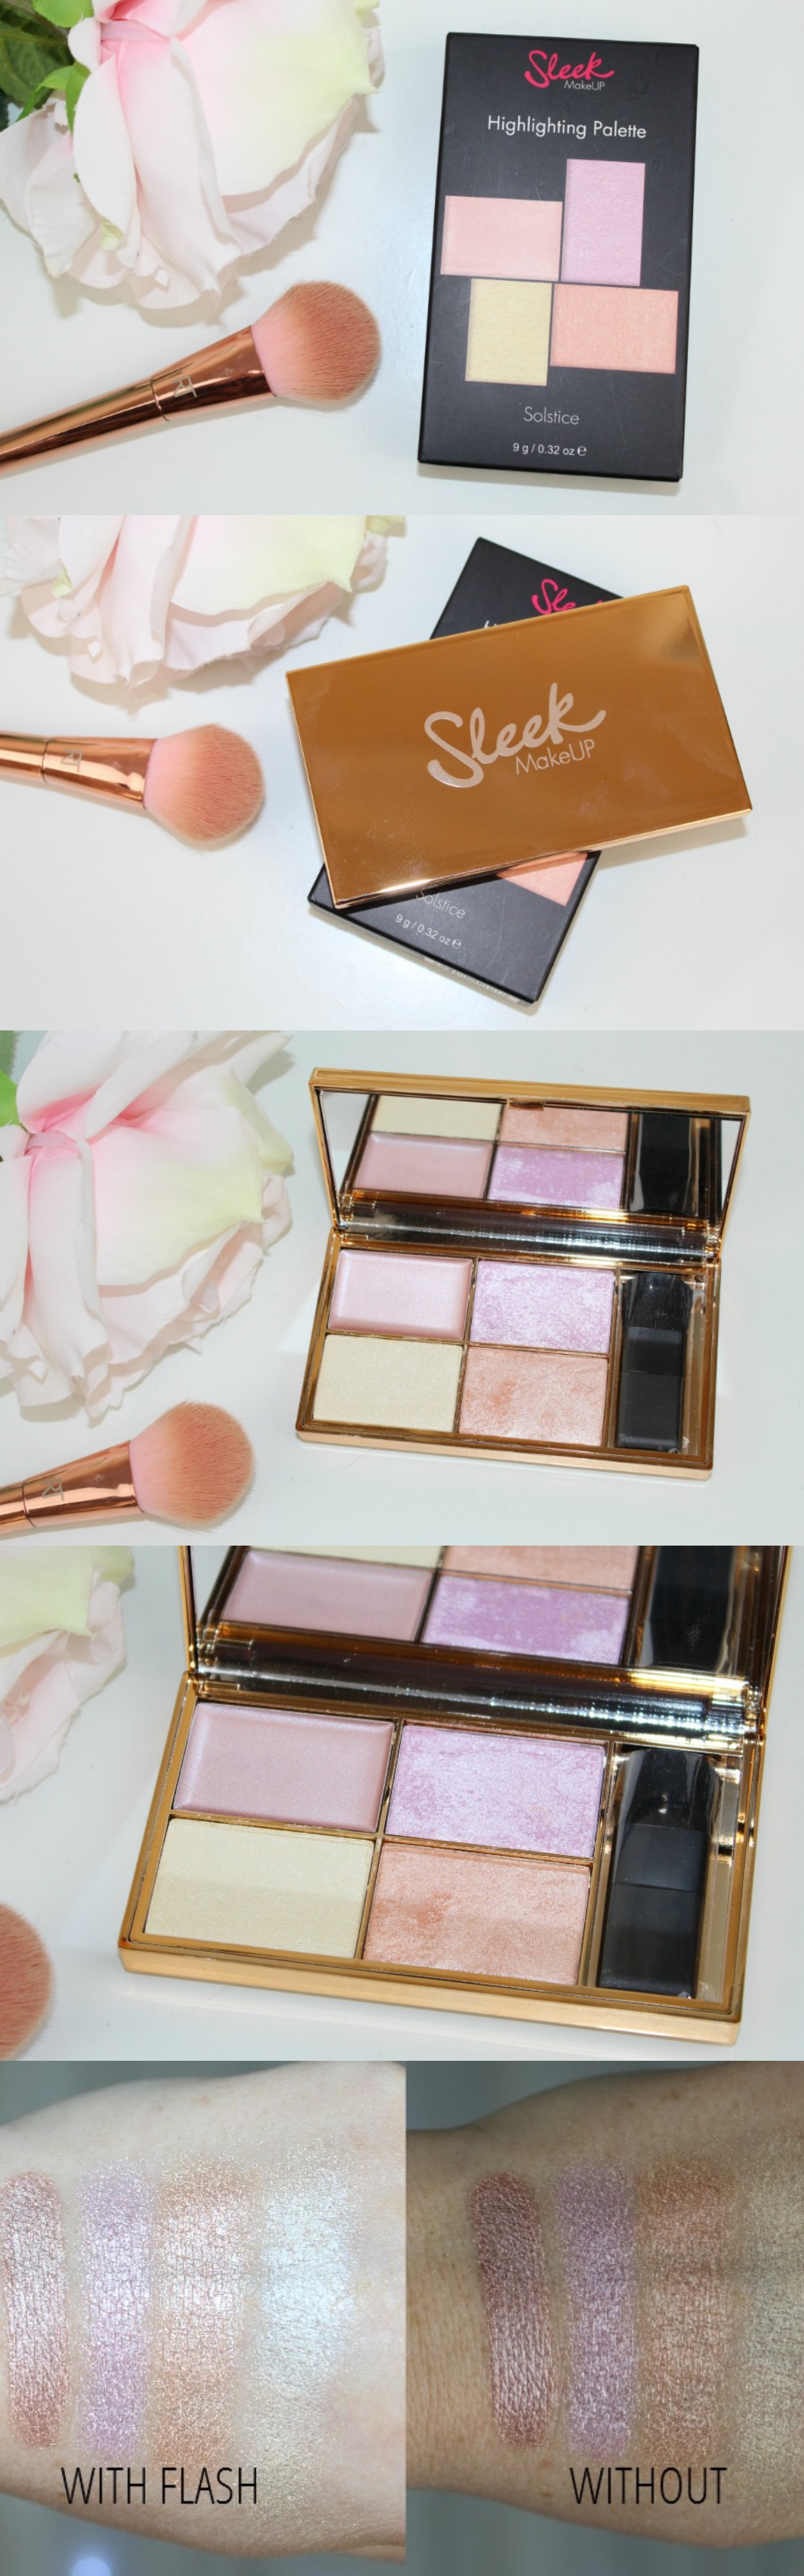 Revolution Radiance Lights Palette Review and Photos